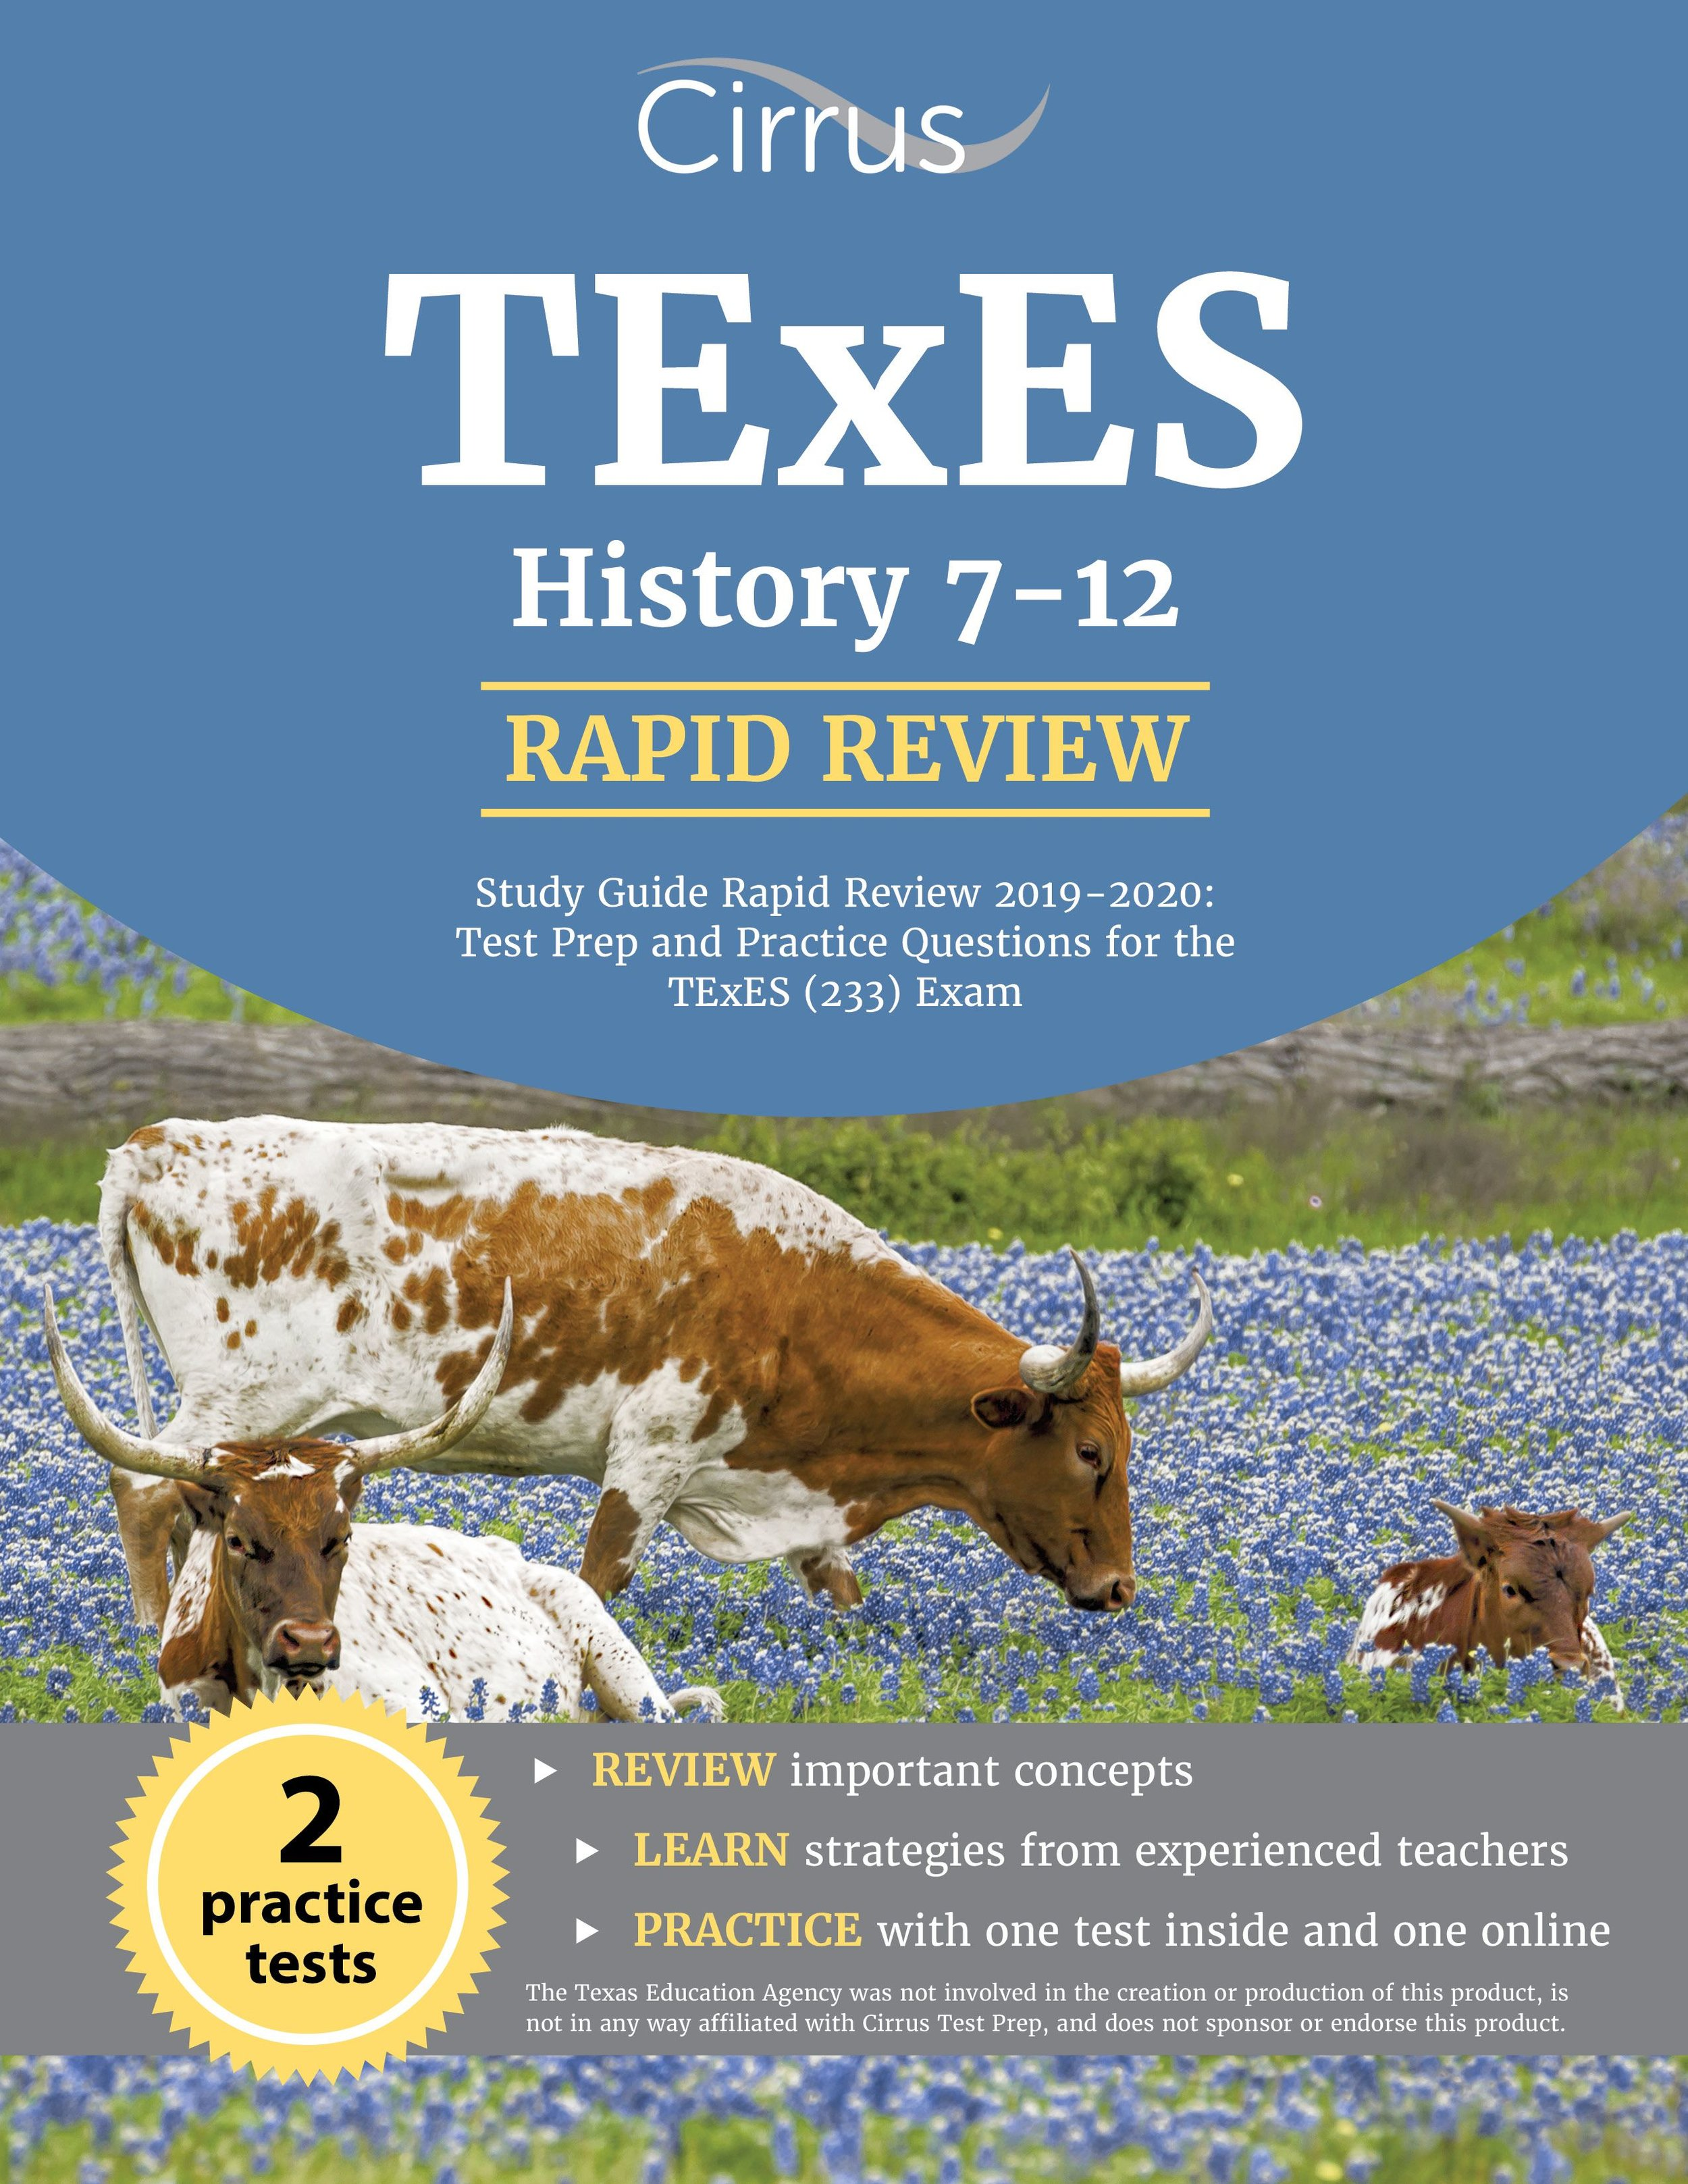 TExES_RR_history_cover_website-compressor.jpg